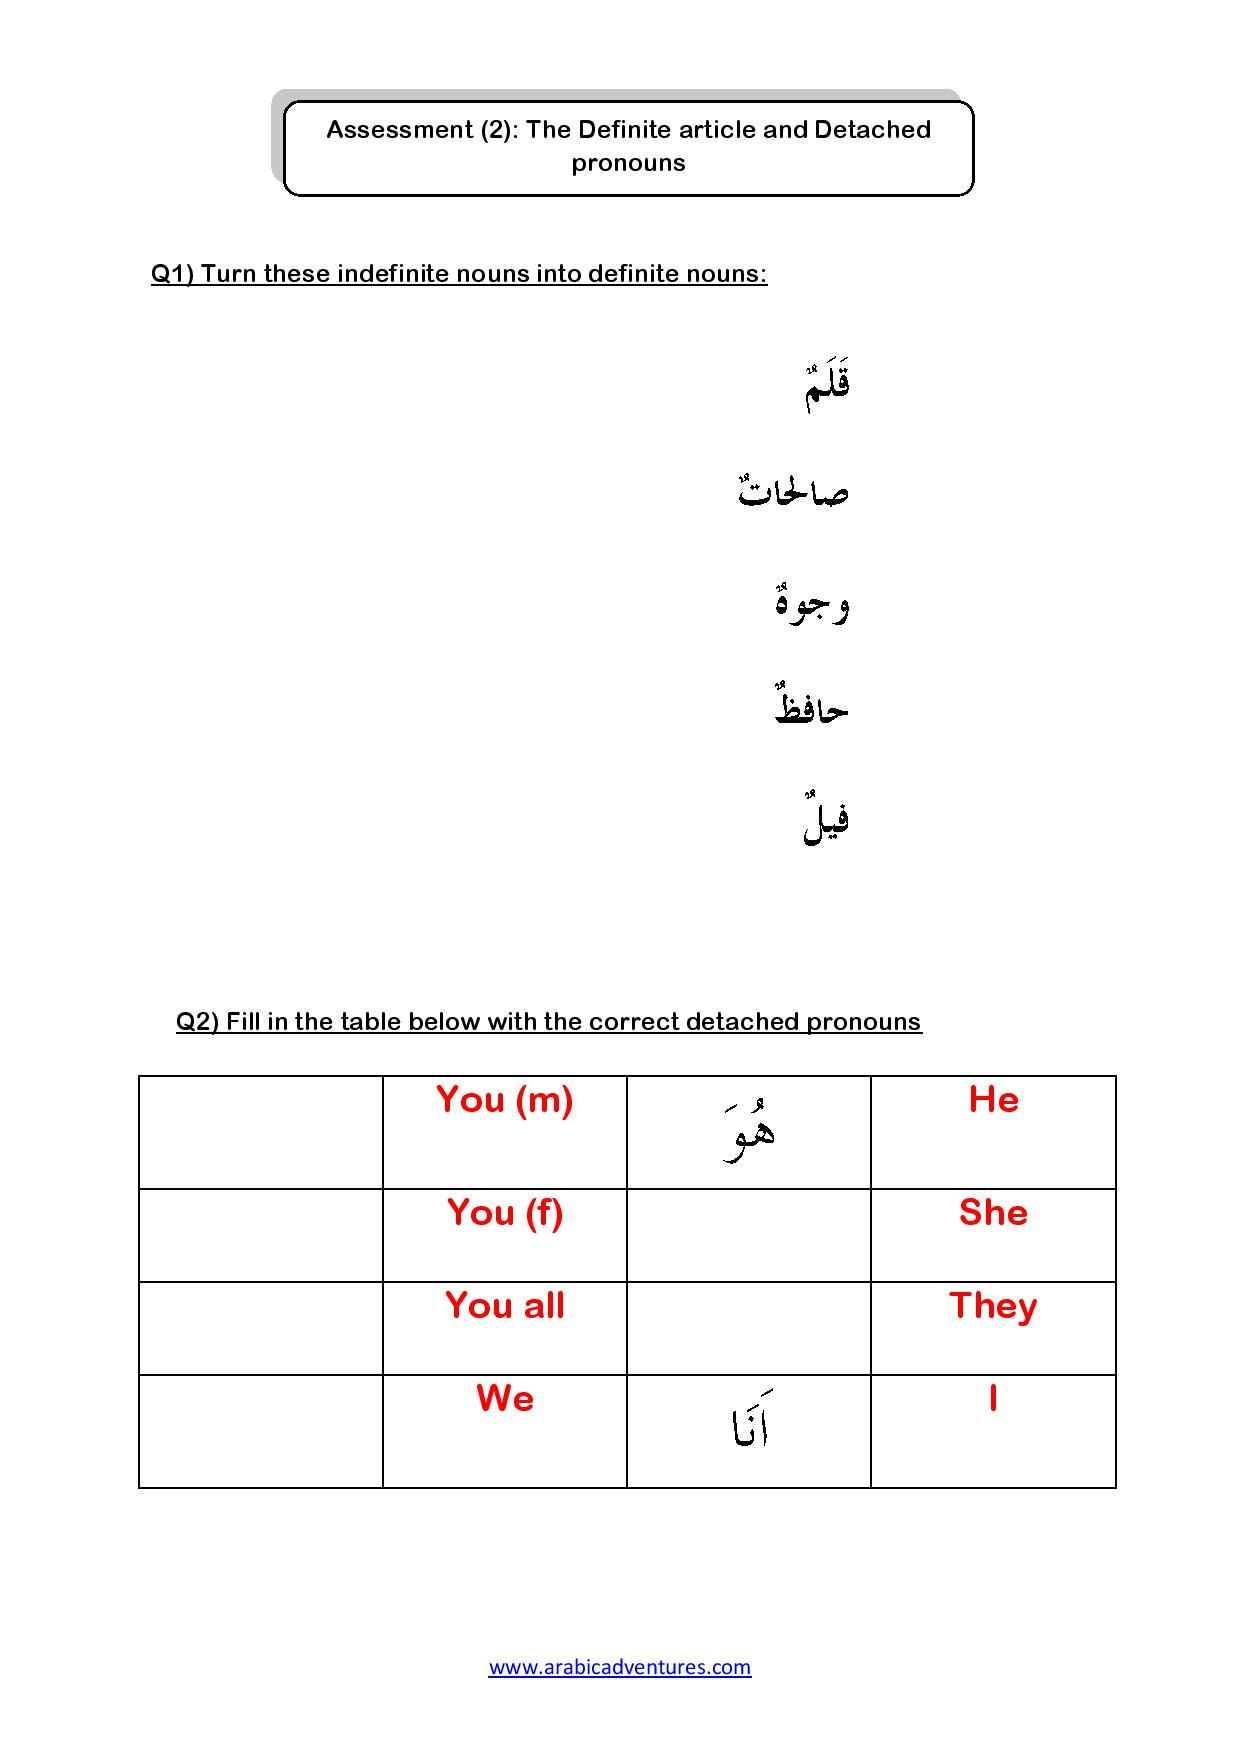 Arabic Grammar Assessment On The Definite Article And